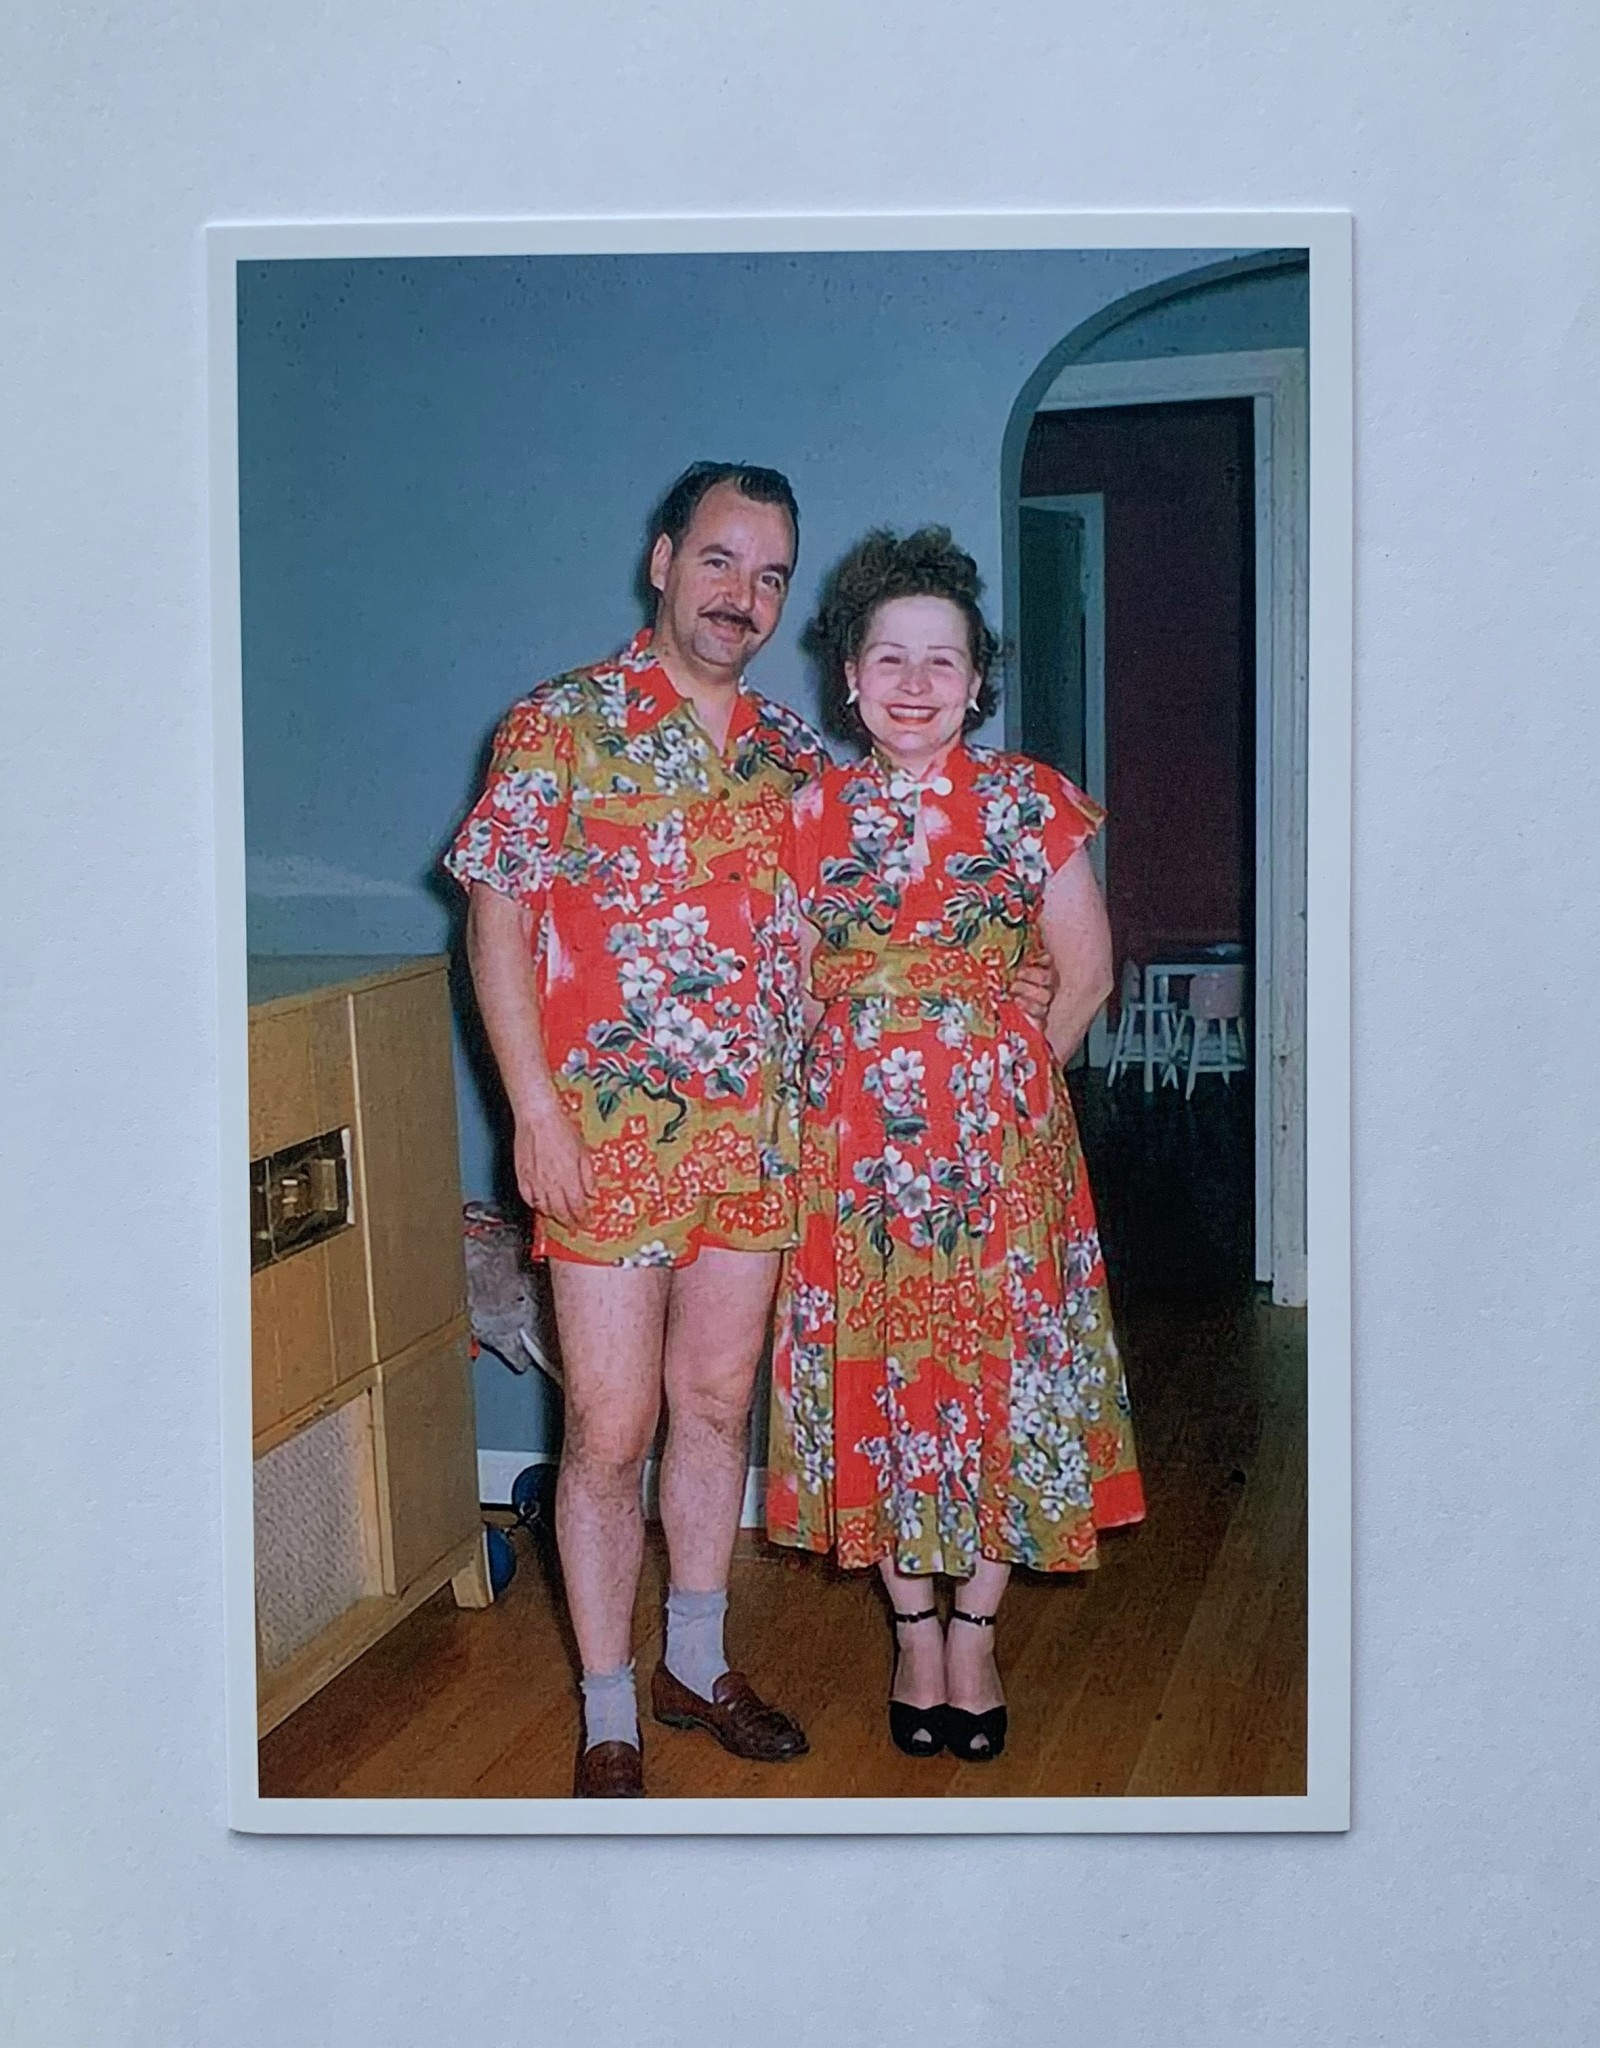 Plaizier Couple in flower outfit